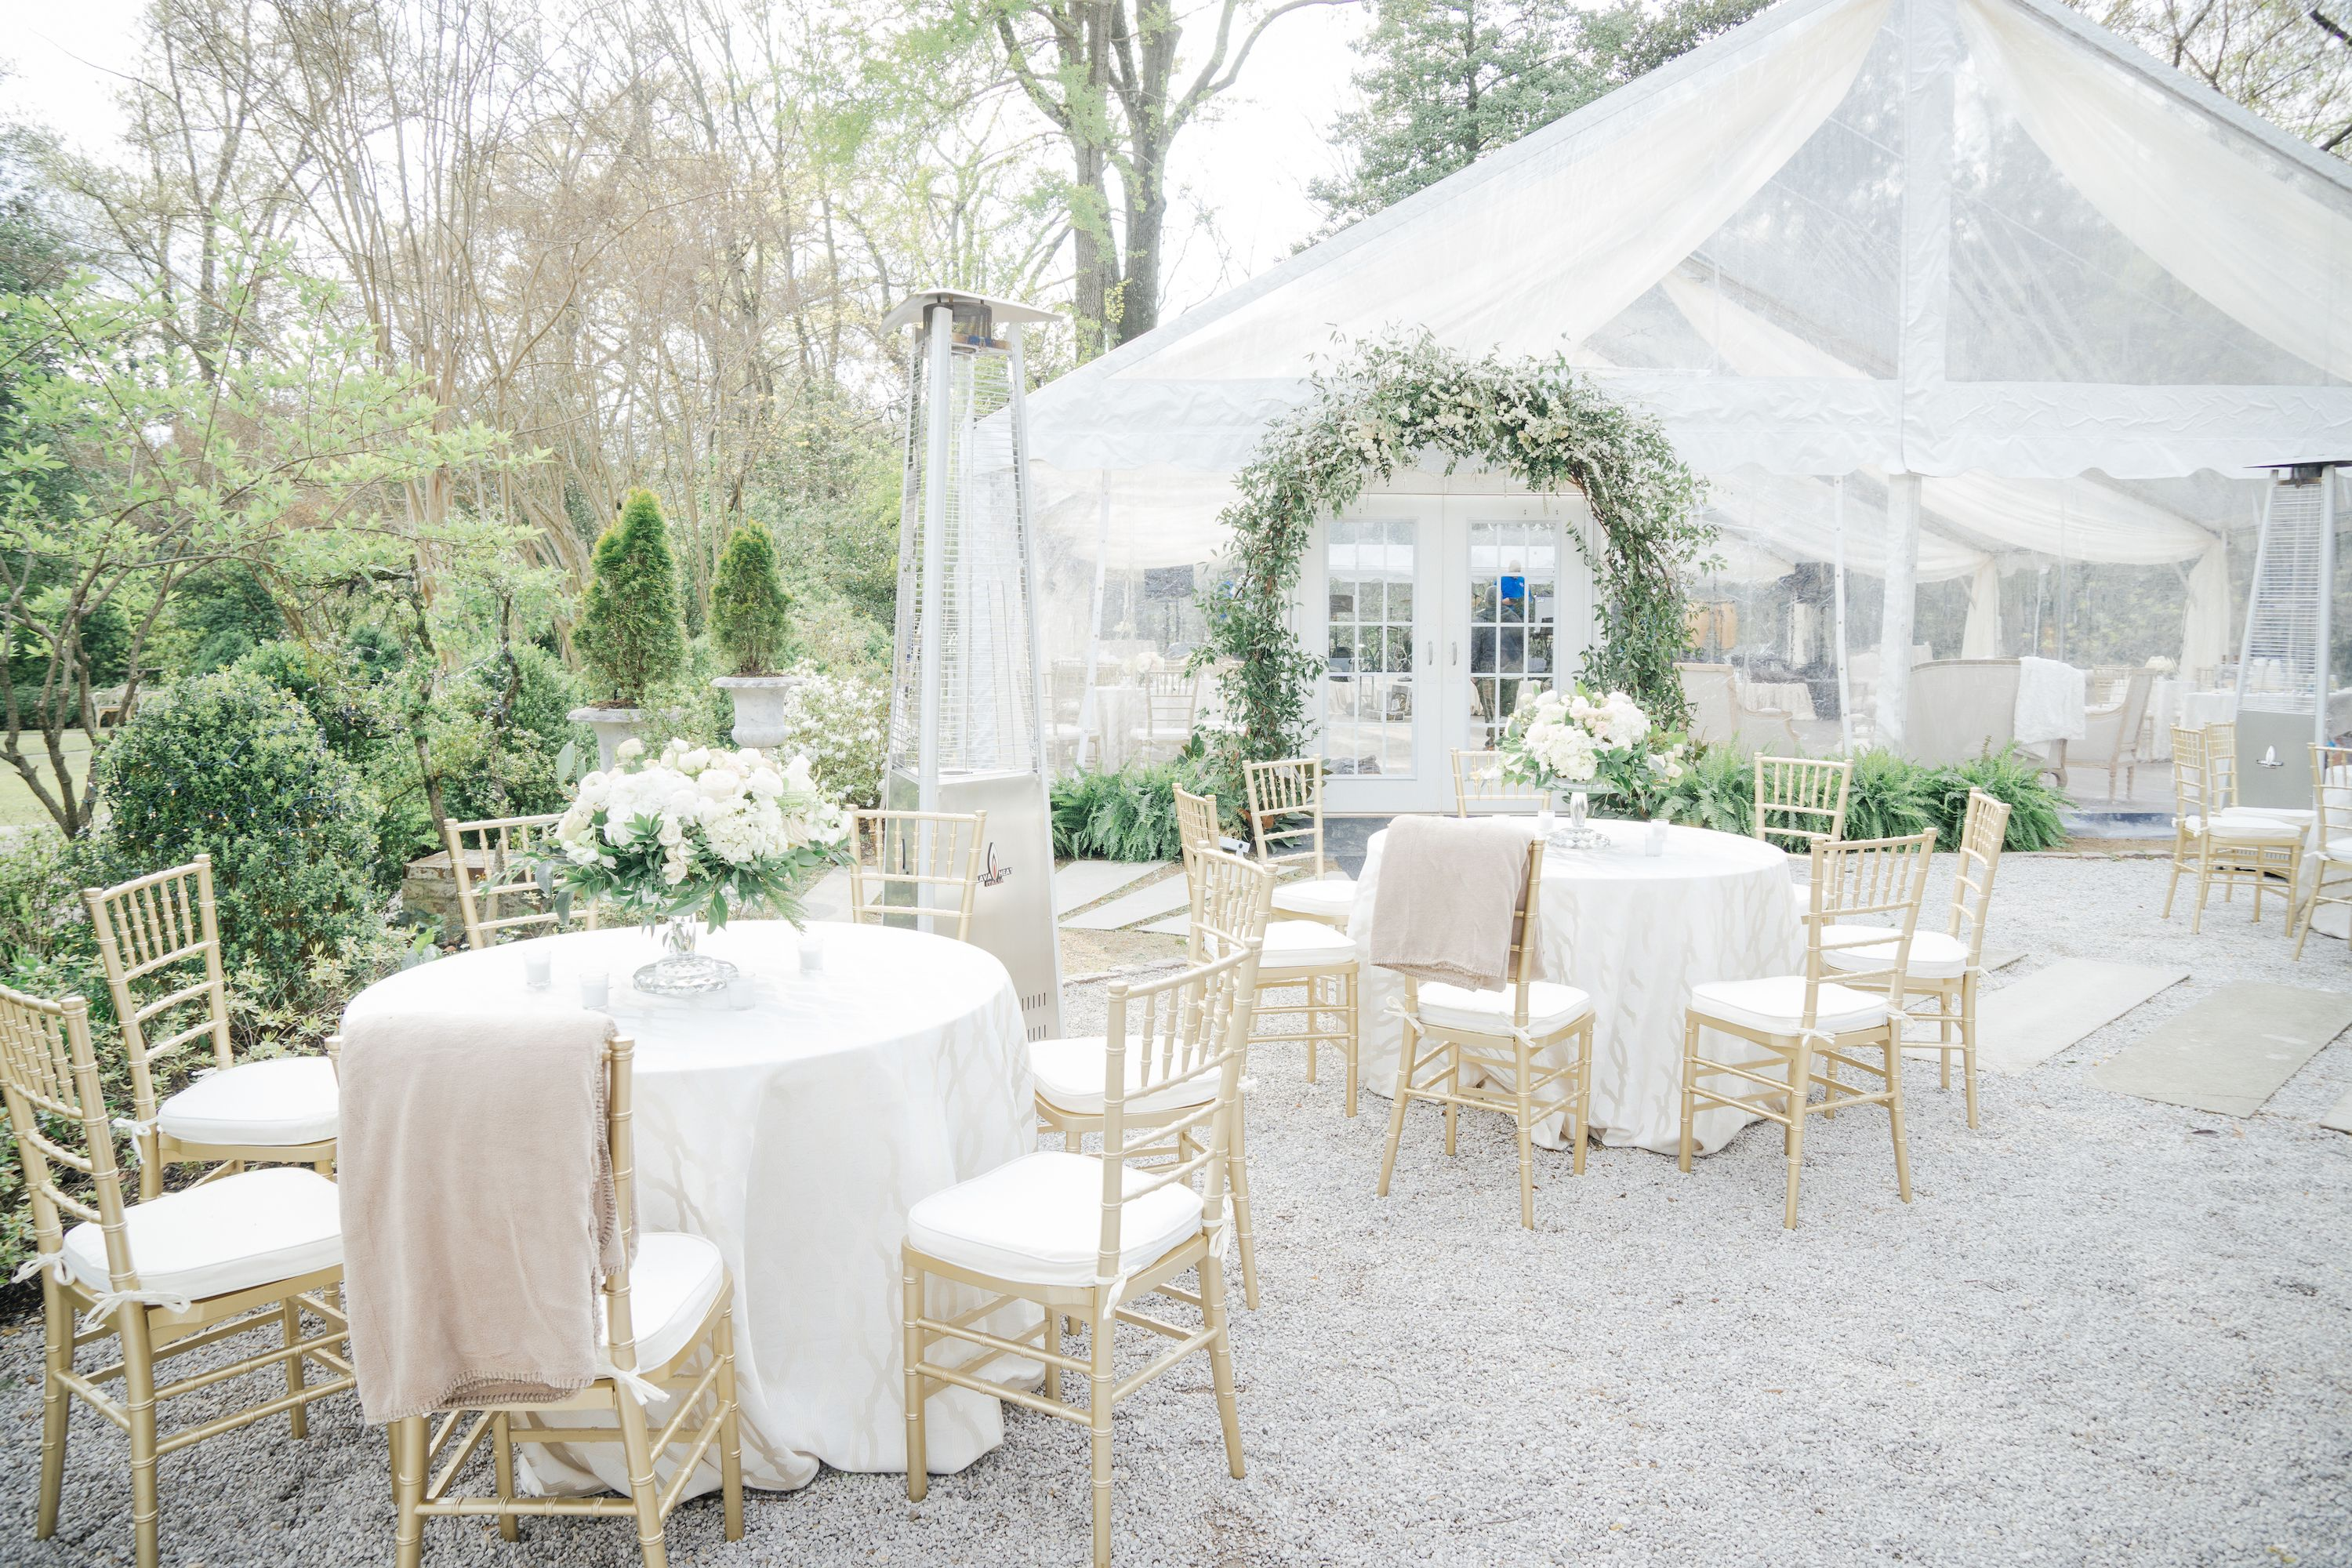 Romantic + Whimsical Dining | Outdoor Wedding Reception & Tent Decor ...